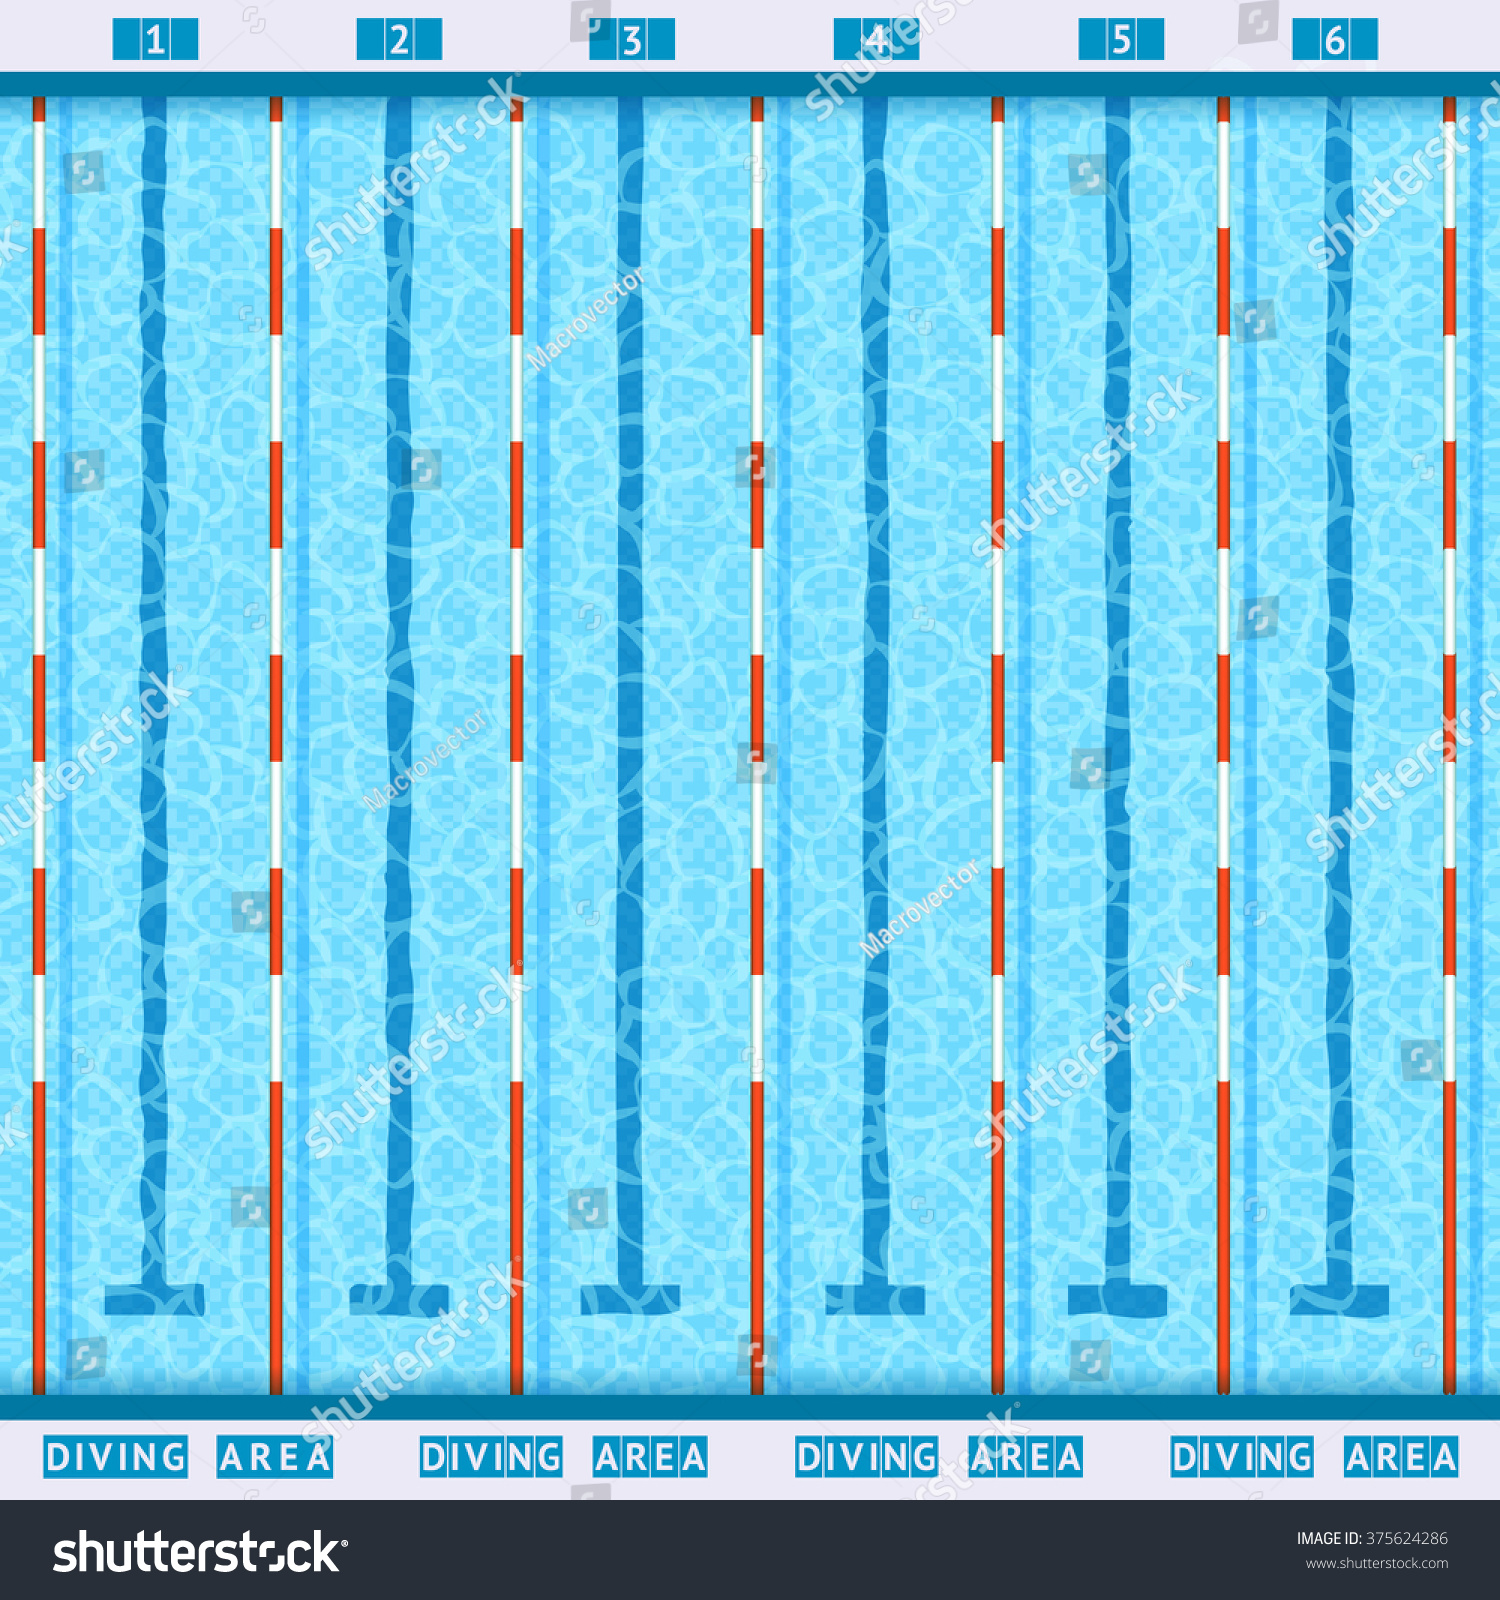 olympic swimming pool deep bath lanes top view flat pictogram with clean transparent blue water vector